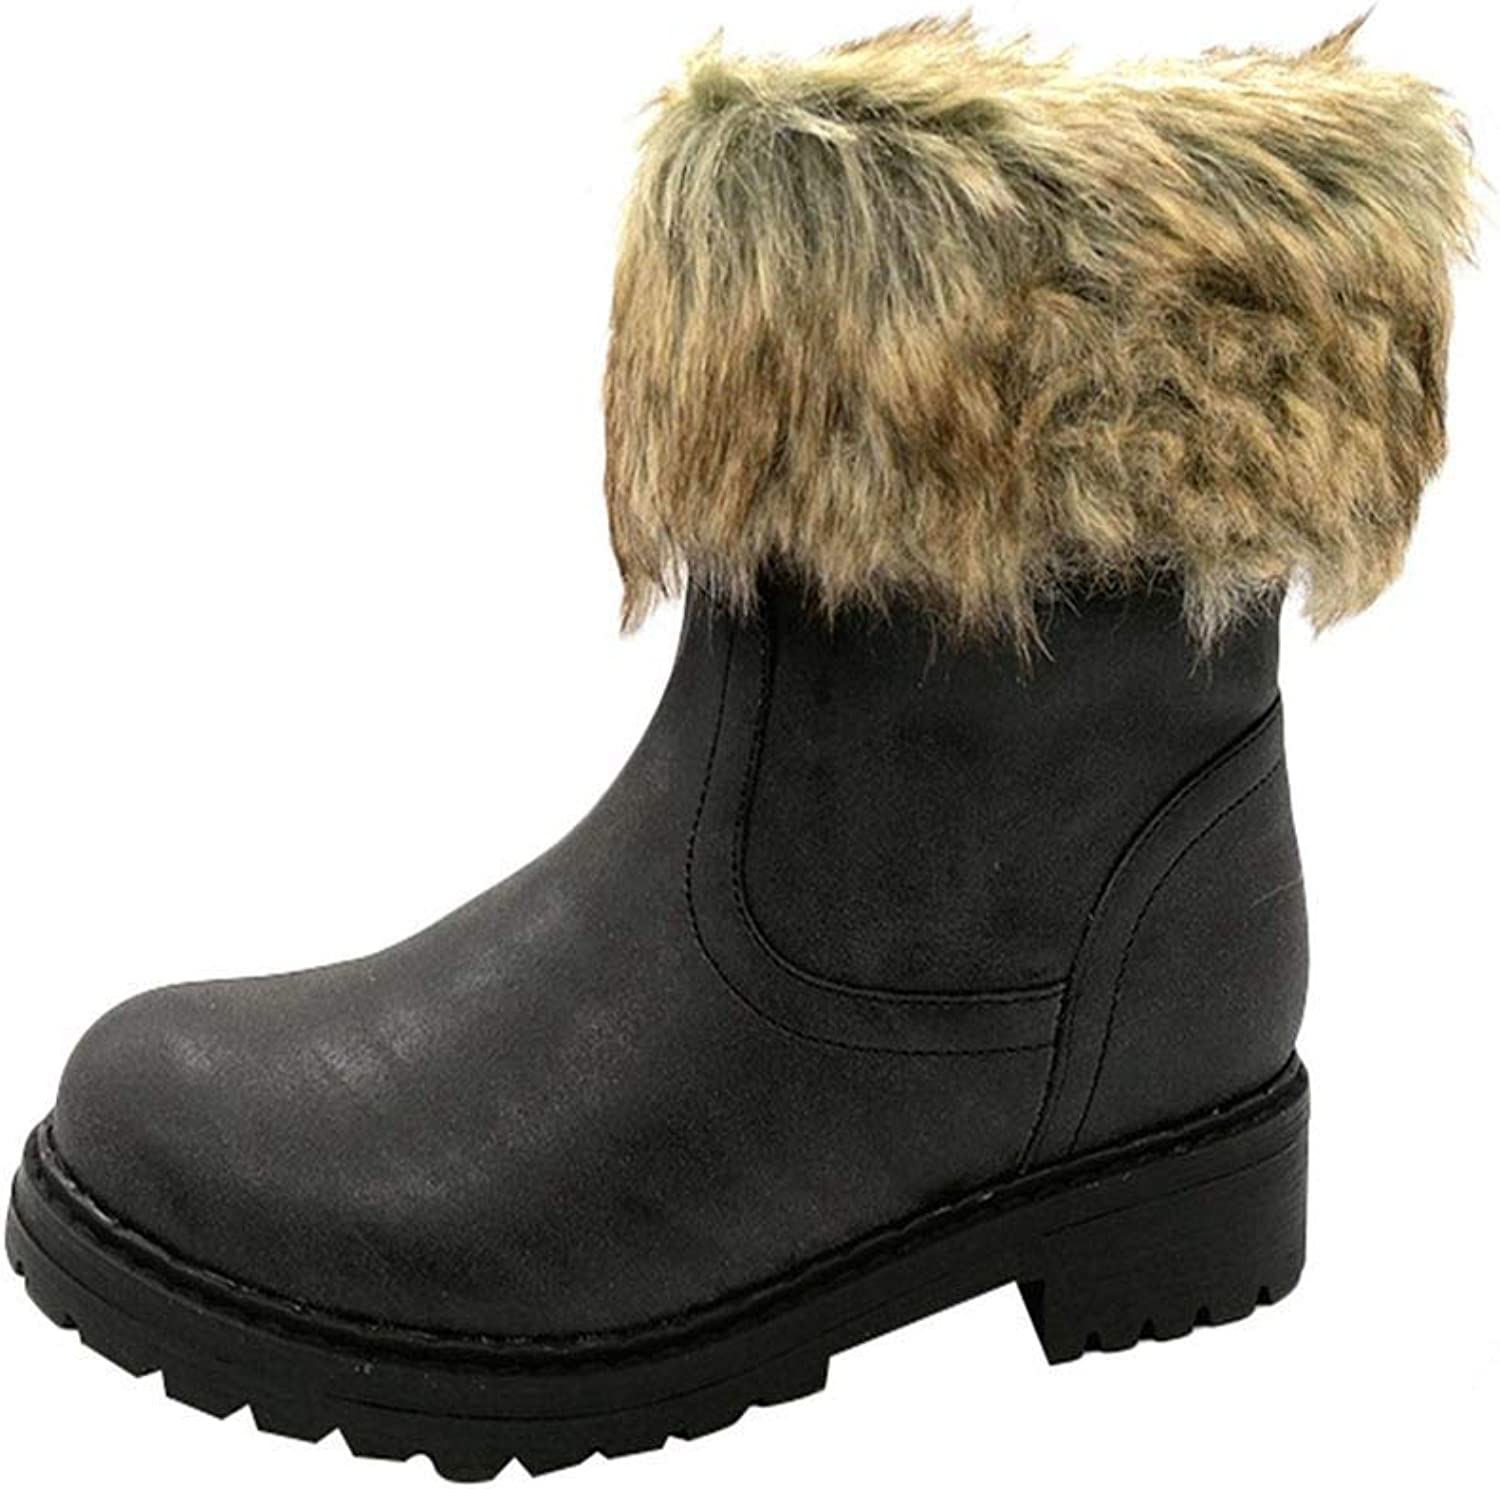 LOKOUO Ladies shoes Women Non-Slip Martin Boot Retro Slouch Keep Warm Boot Round Head shoes Flat Low Heel